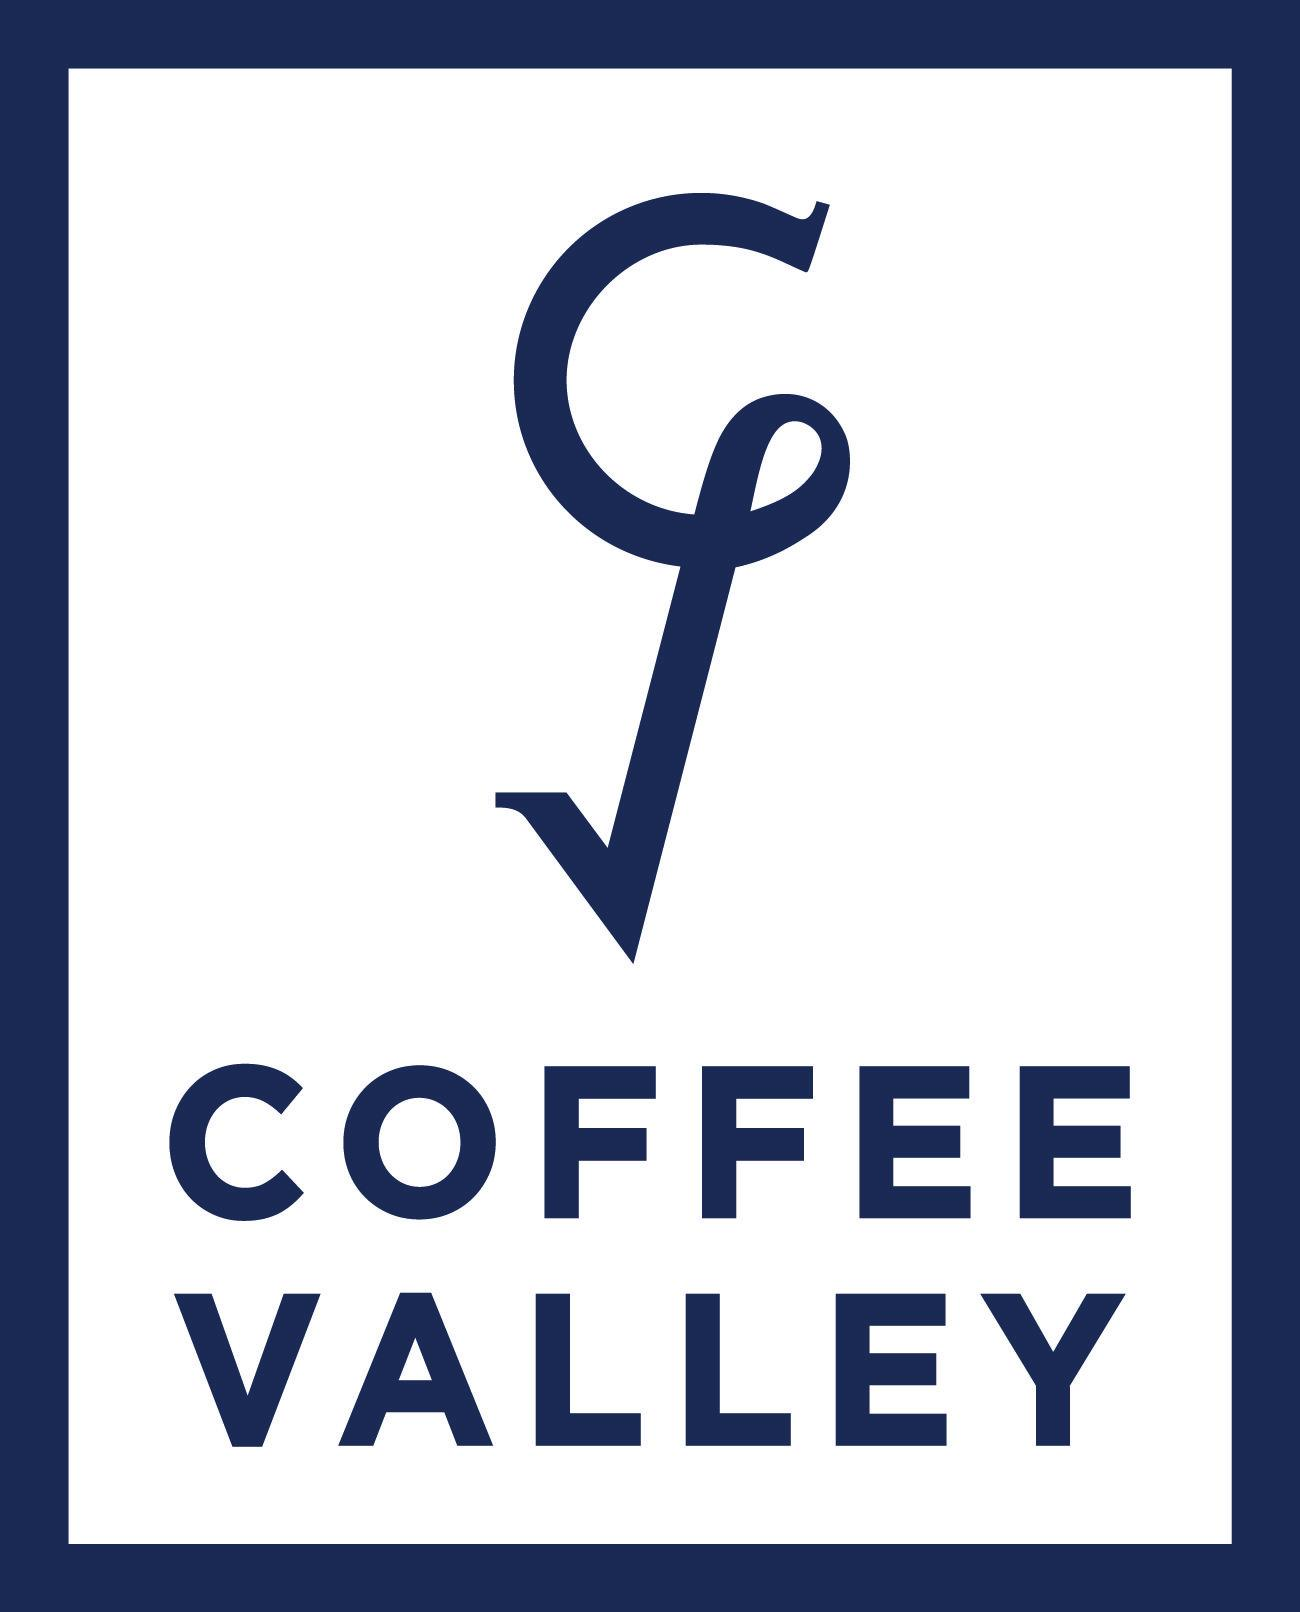 COFFEE VALLEY